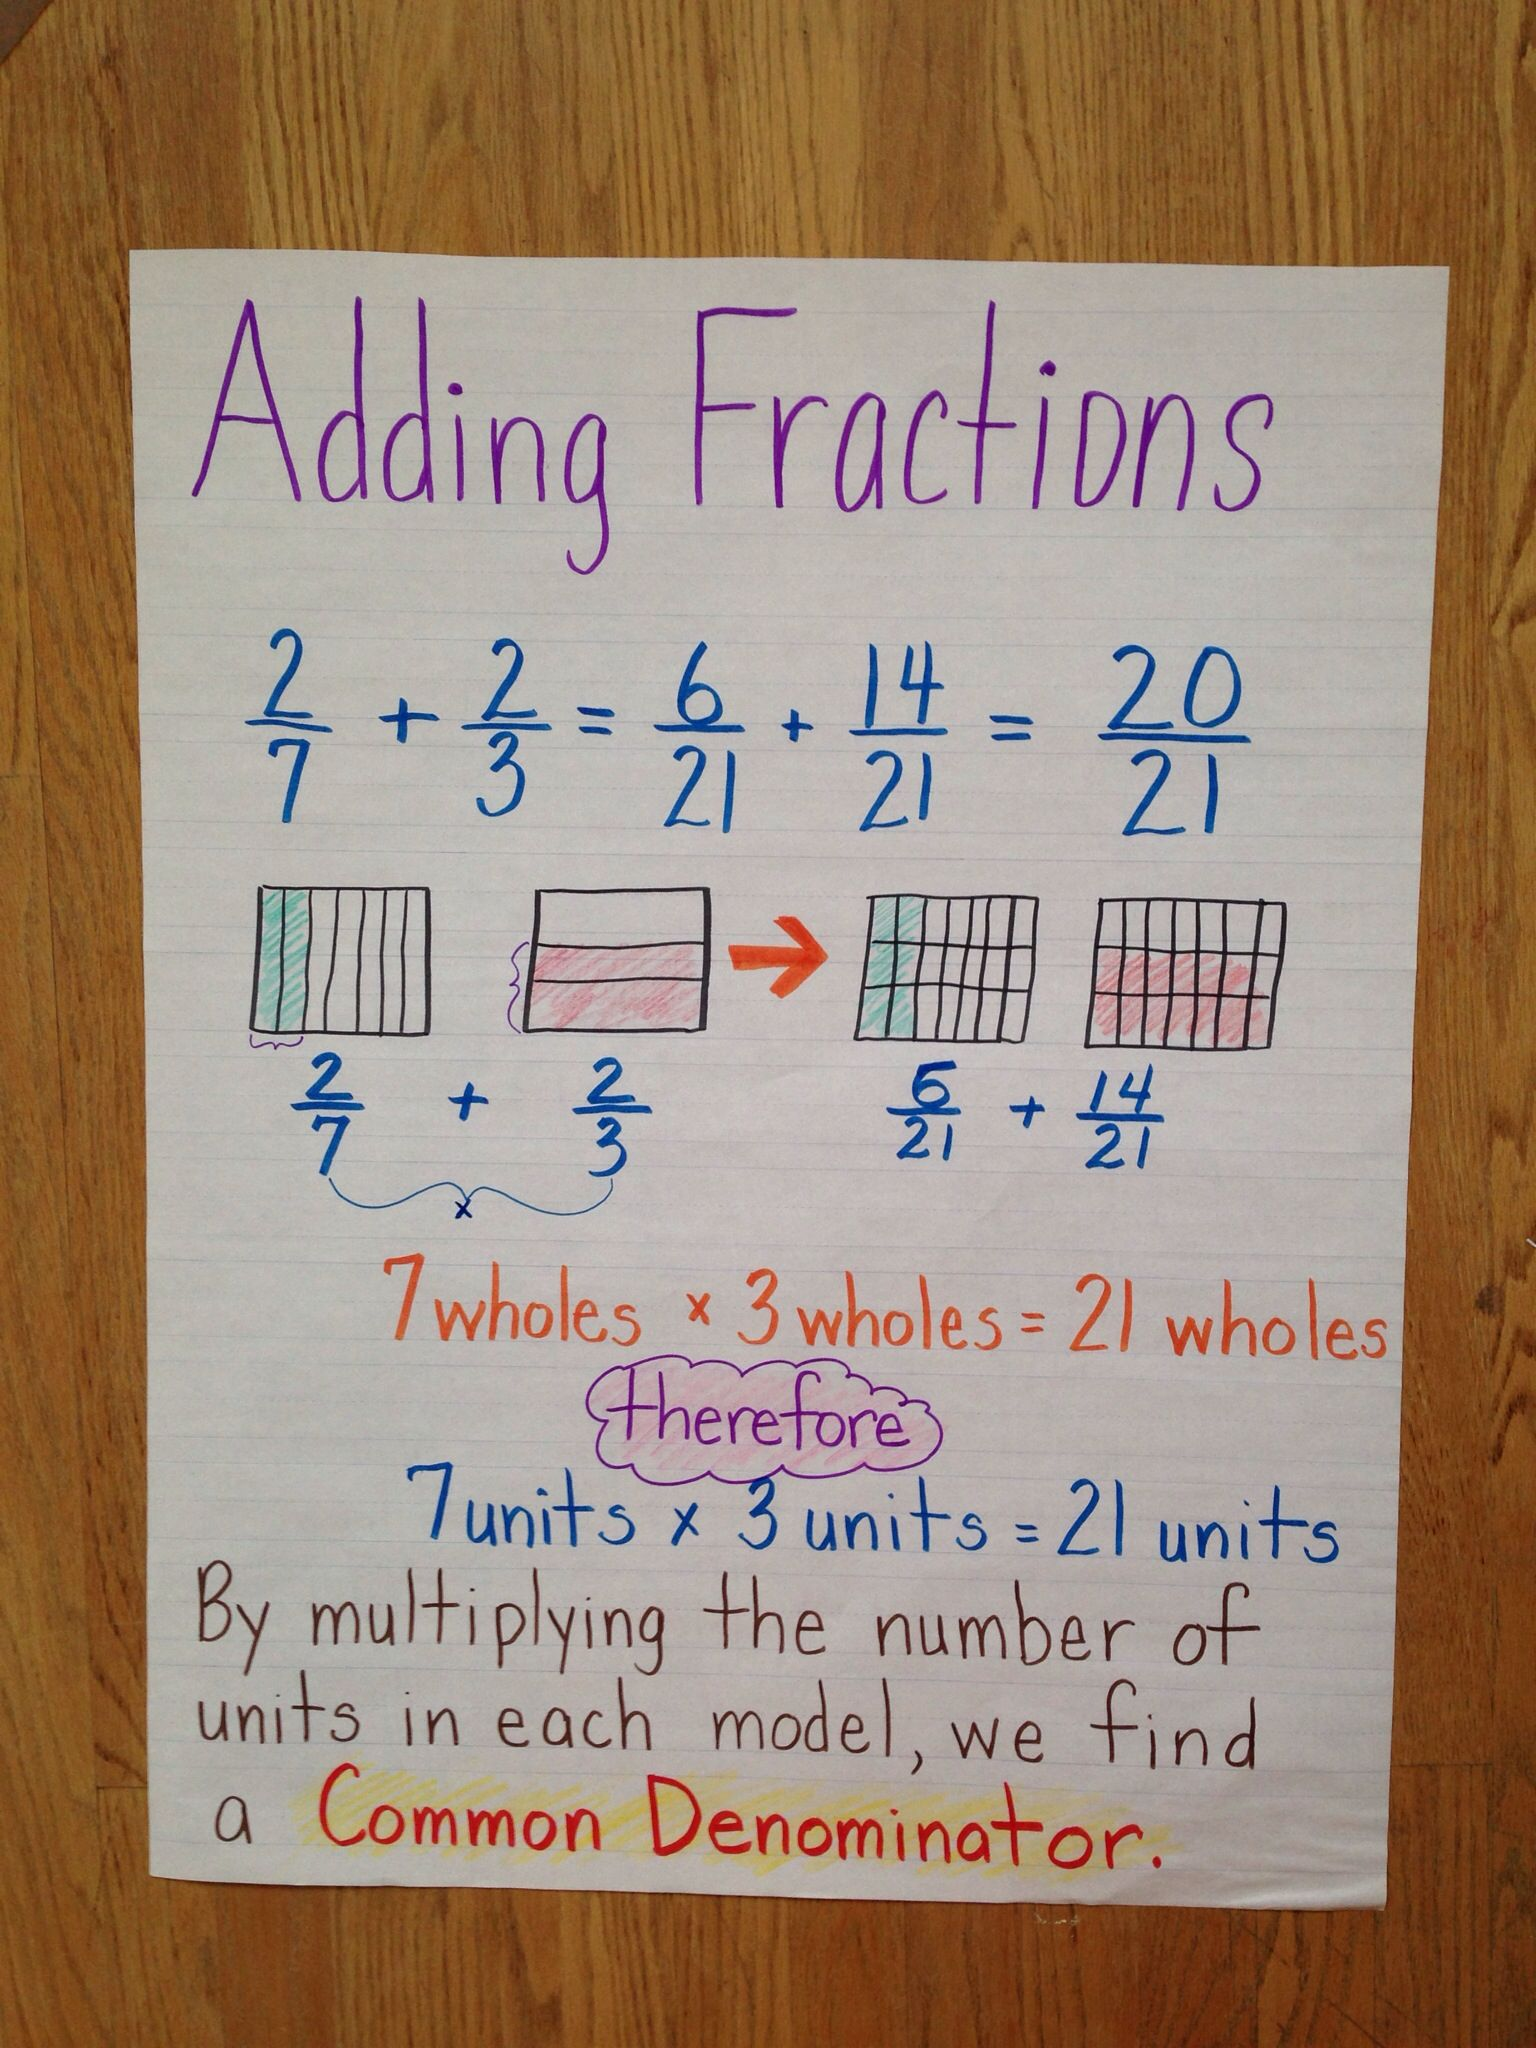 Adding Fractions 5th Grade Math Anchor Charts